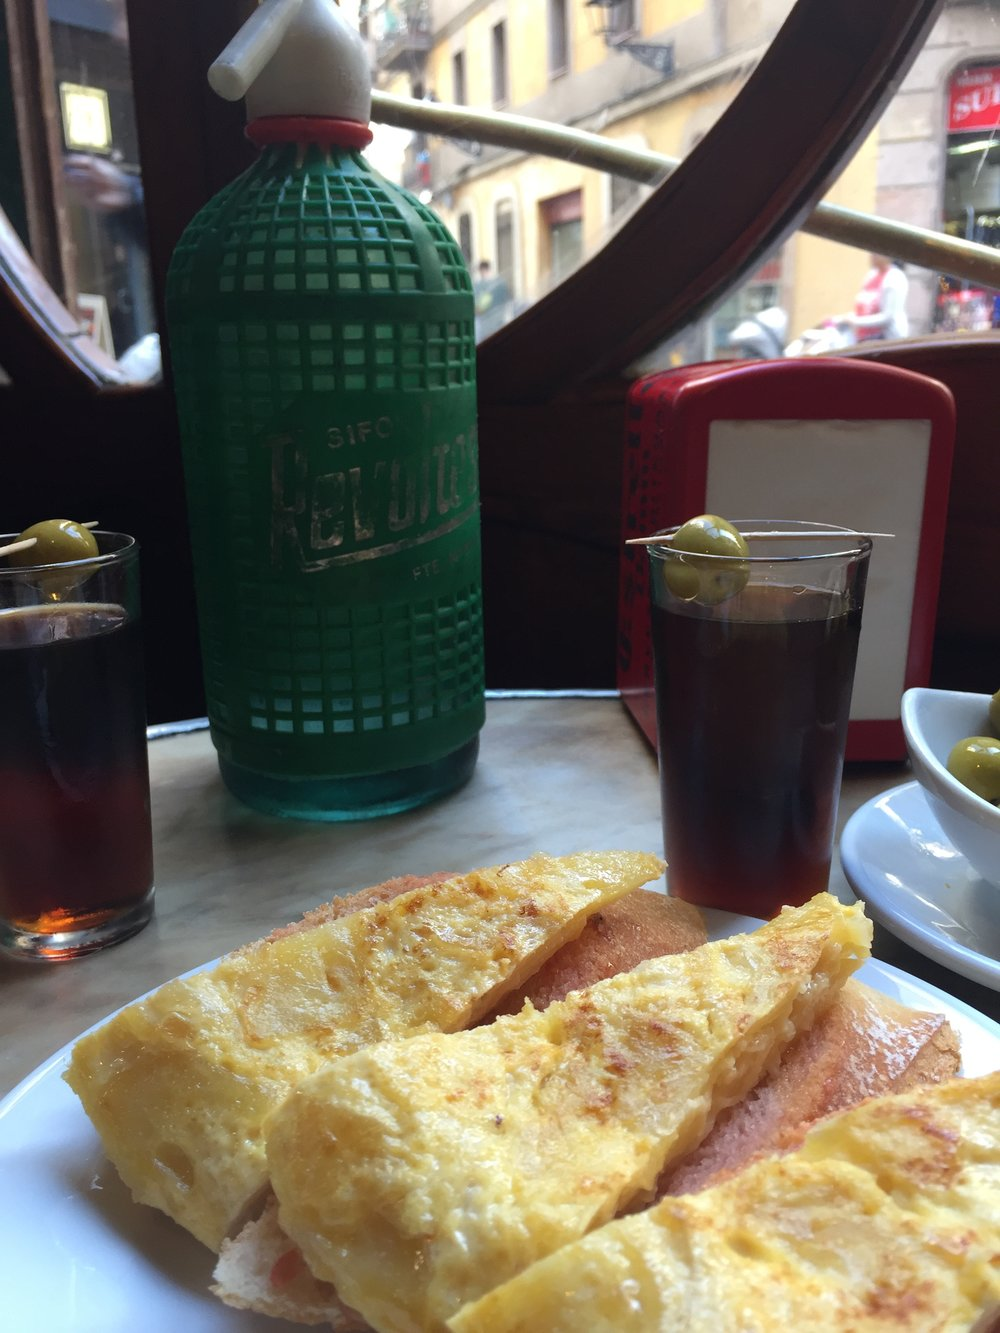 Some good ol' feelings at Casa Almirall - vermouth with siphon and amazing tortilla on toast